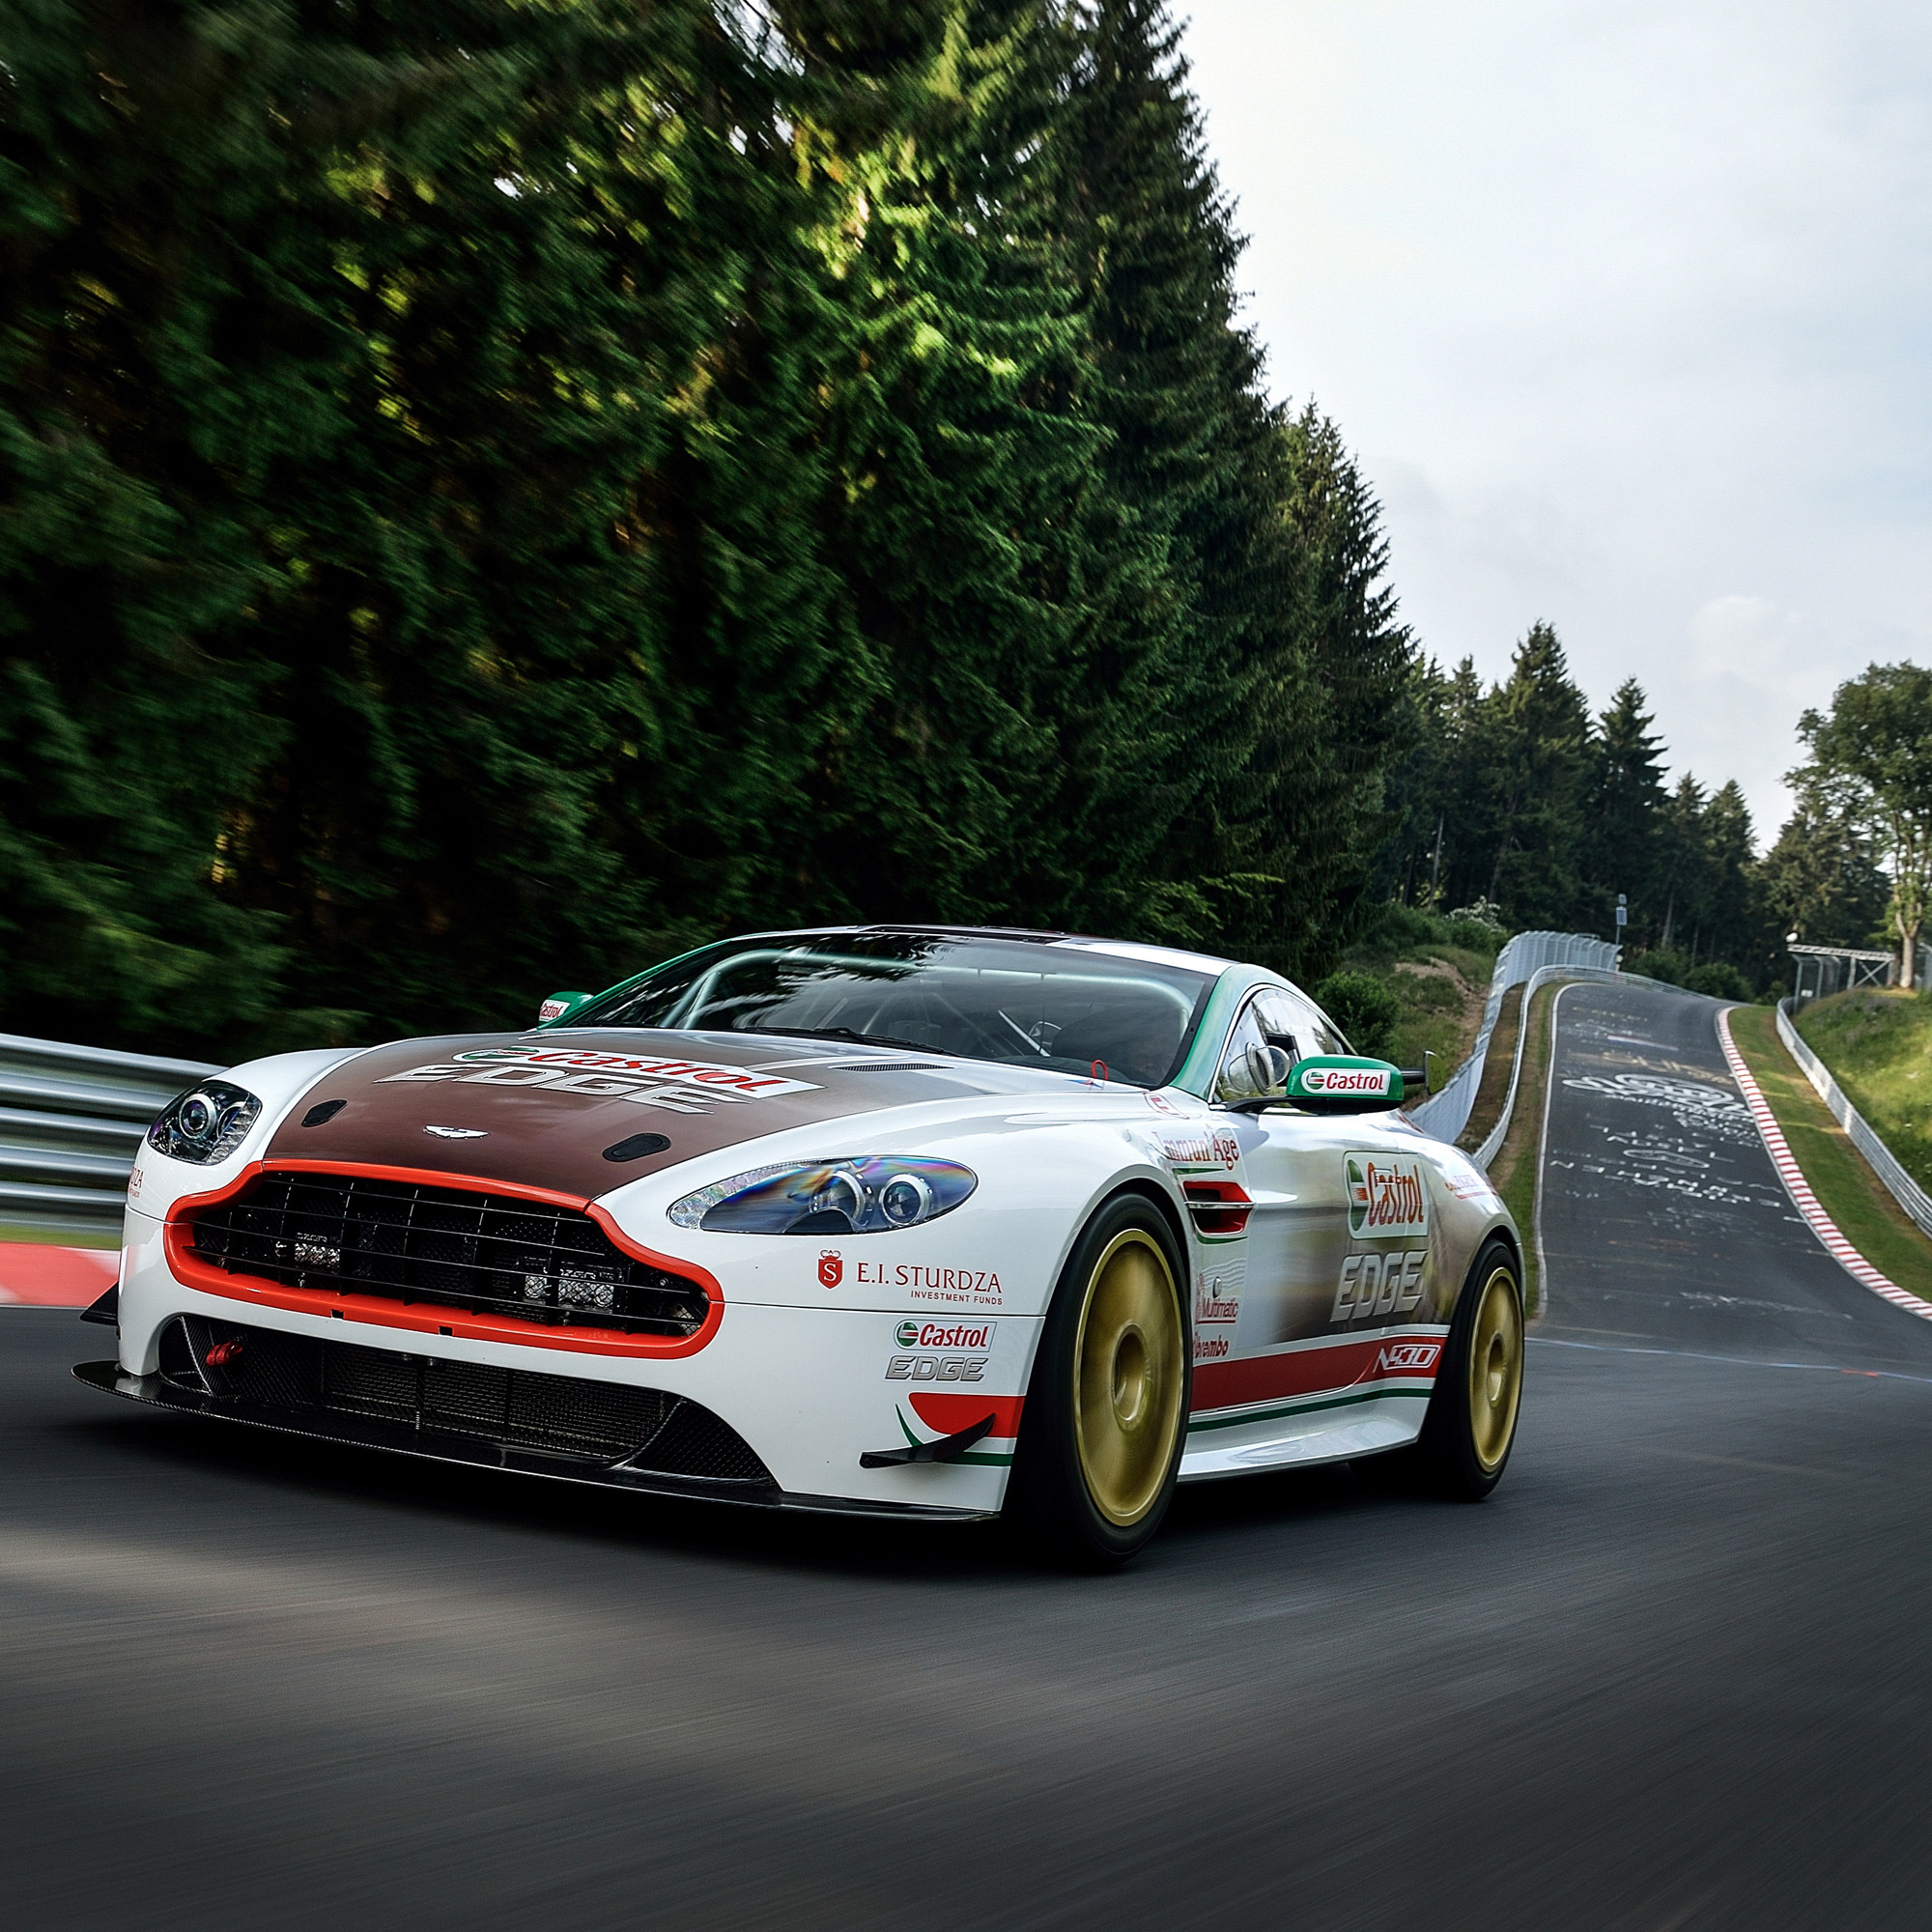 Castrol backs Aston Martin